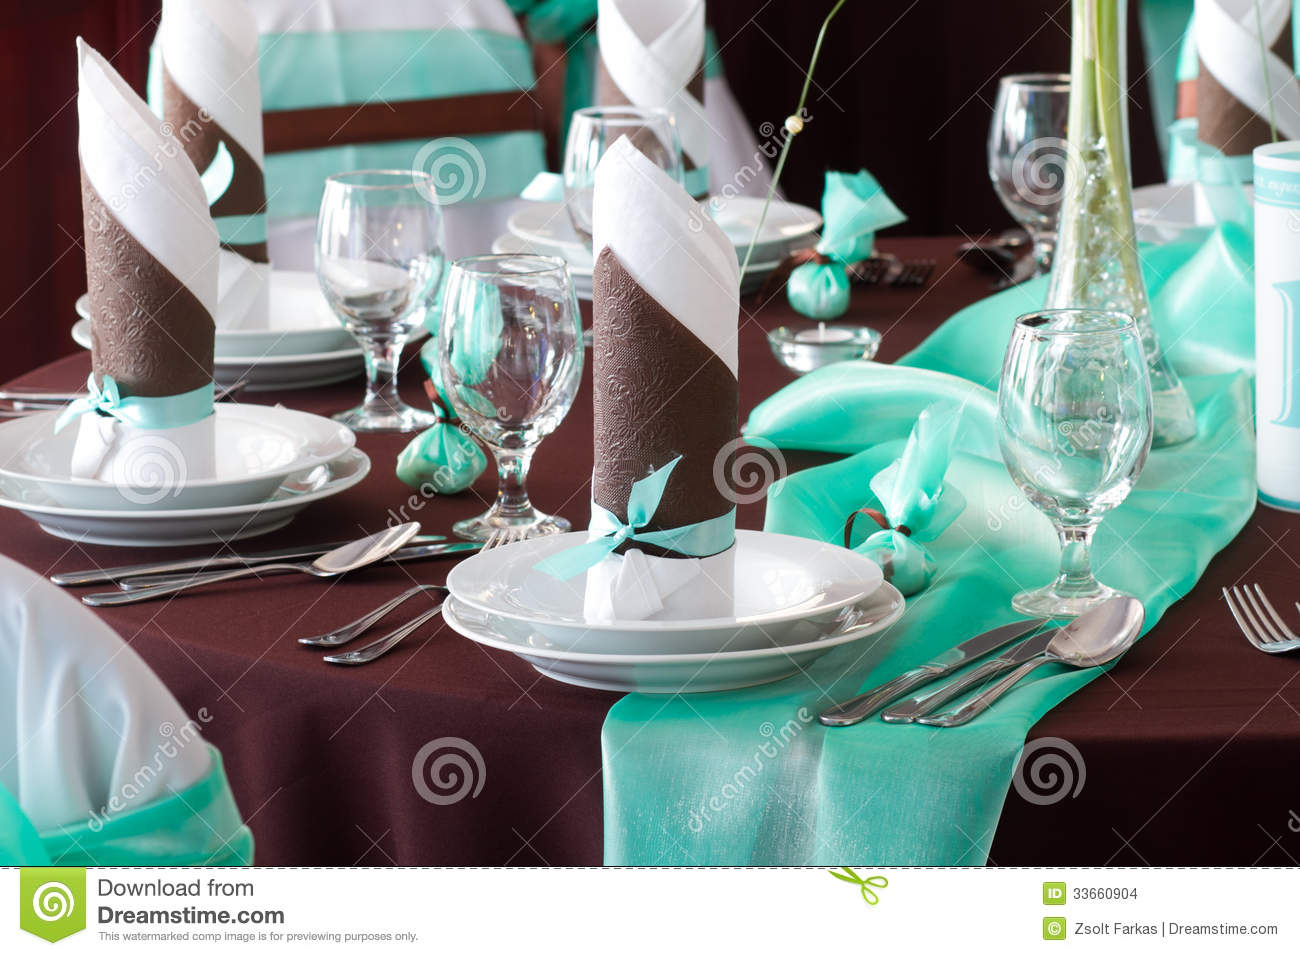 Brown And Teal Wedding Ideas: Wedding Table Set With Decoration For Fine Dining Or